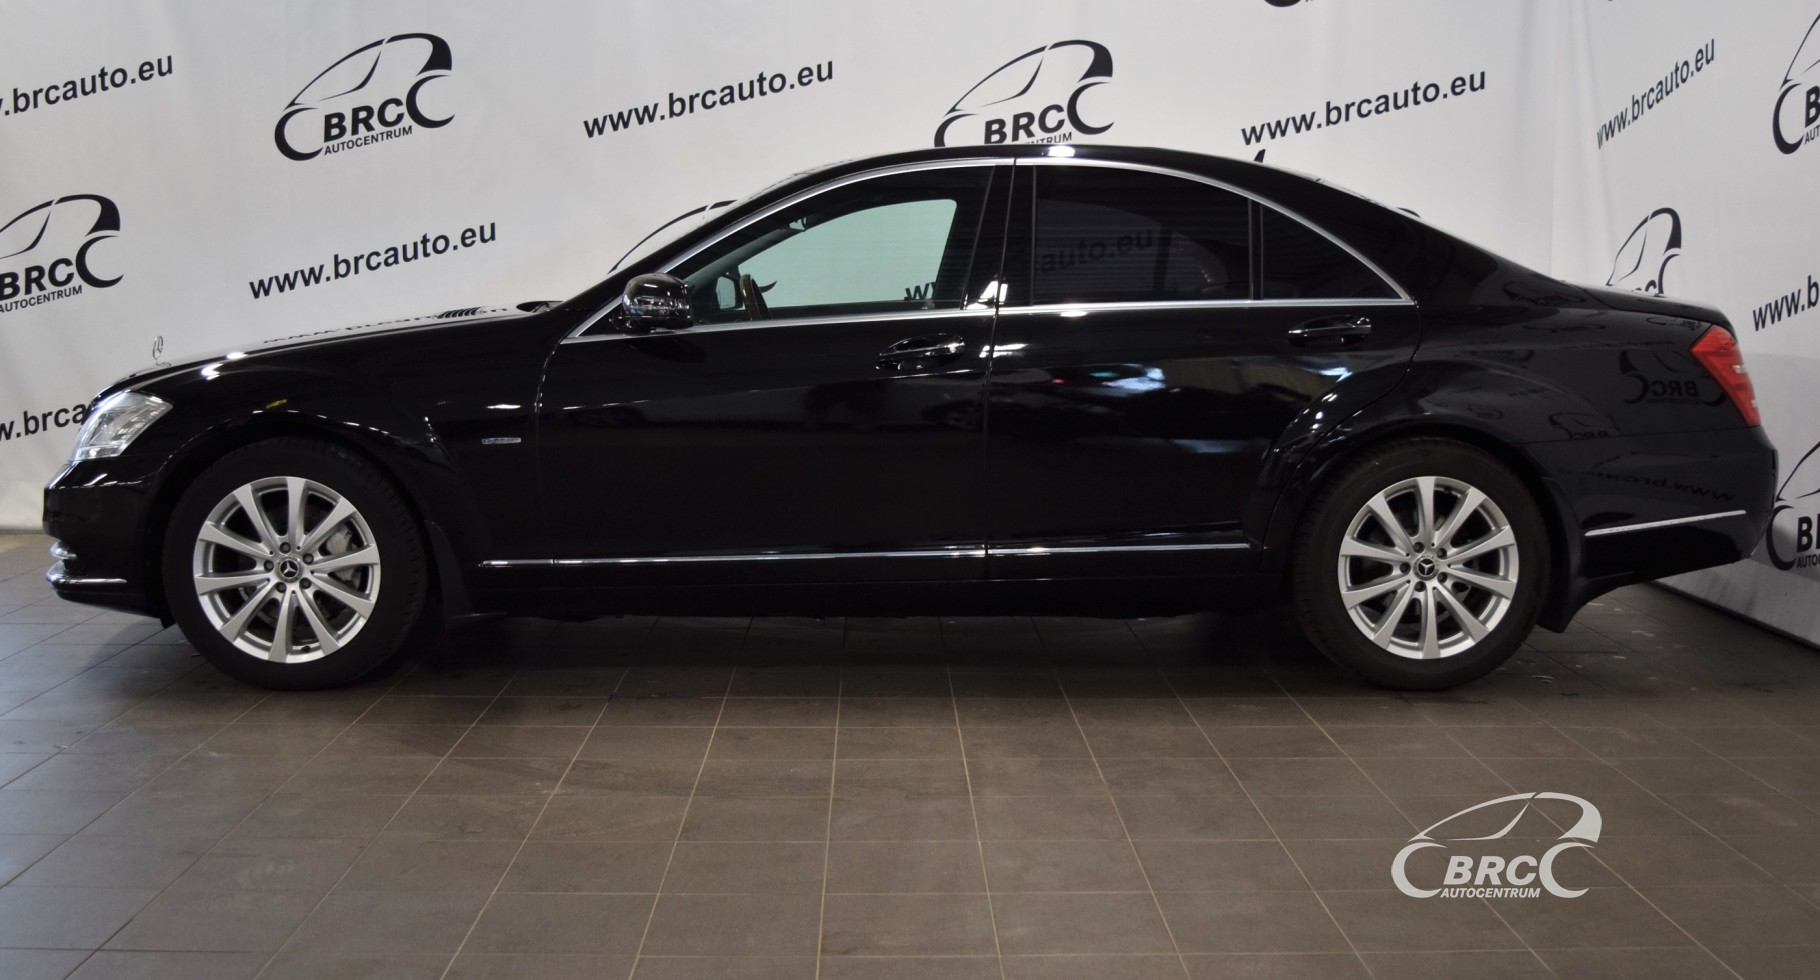 Mercedes-Benz S 350 D V6 Blueefficiency